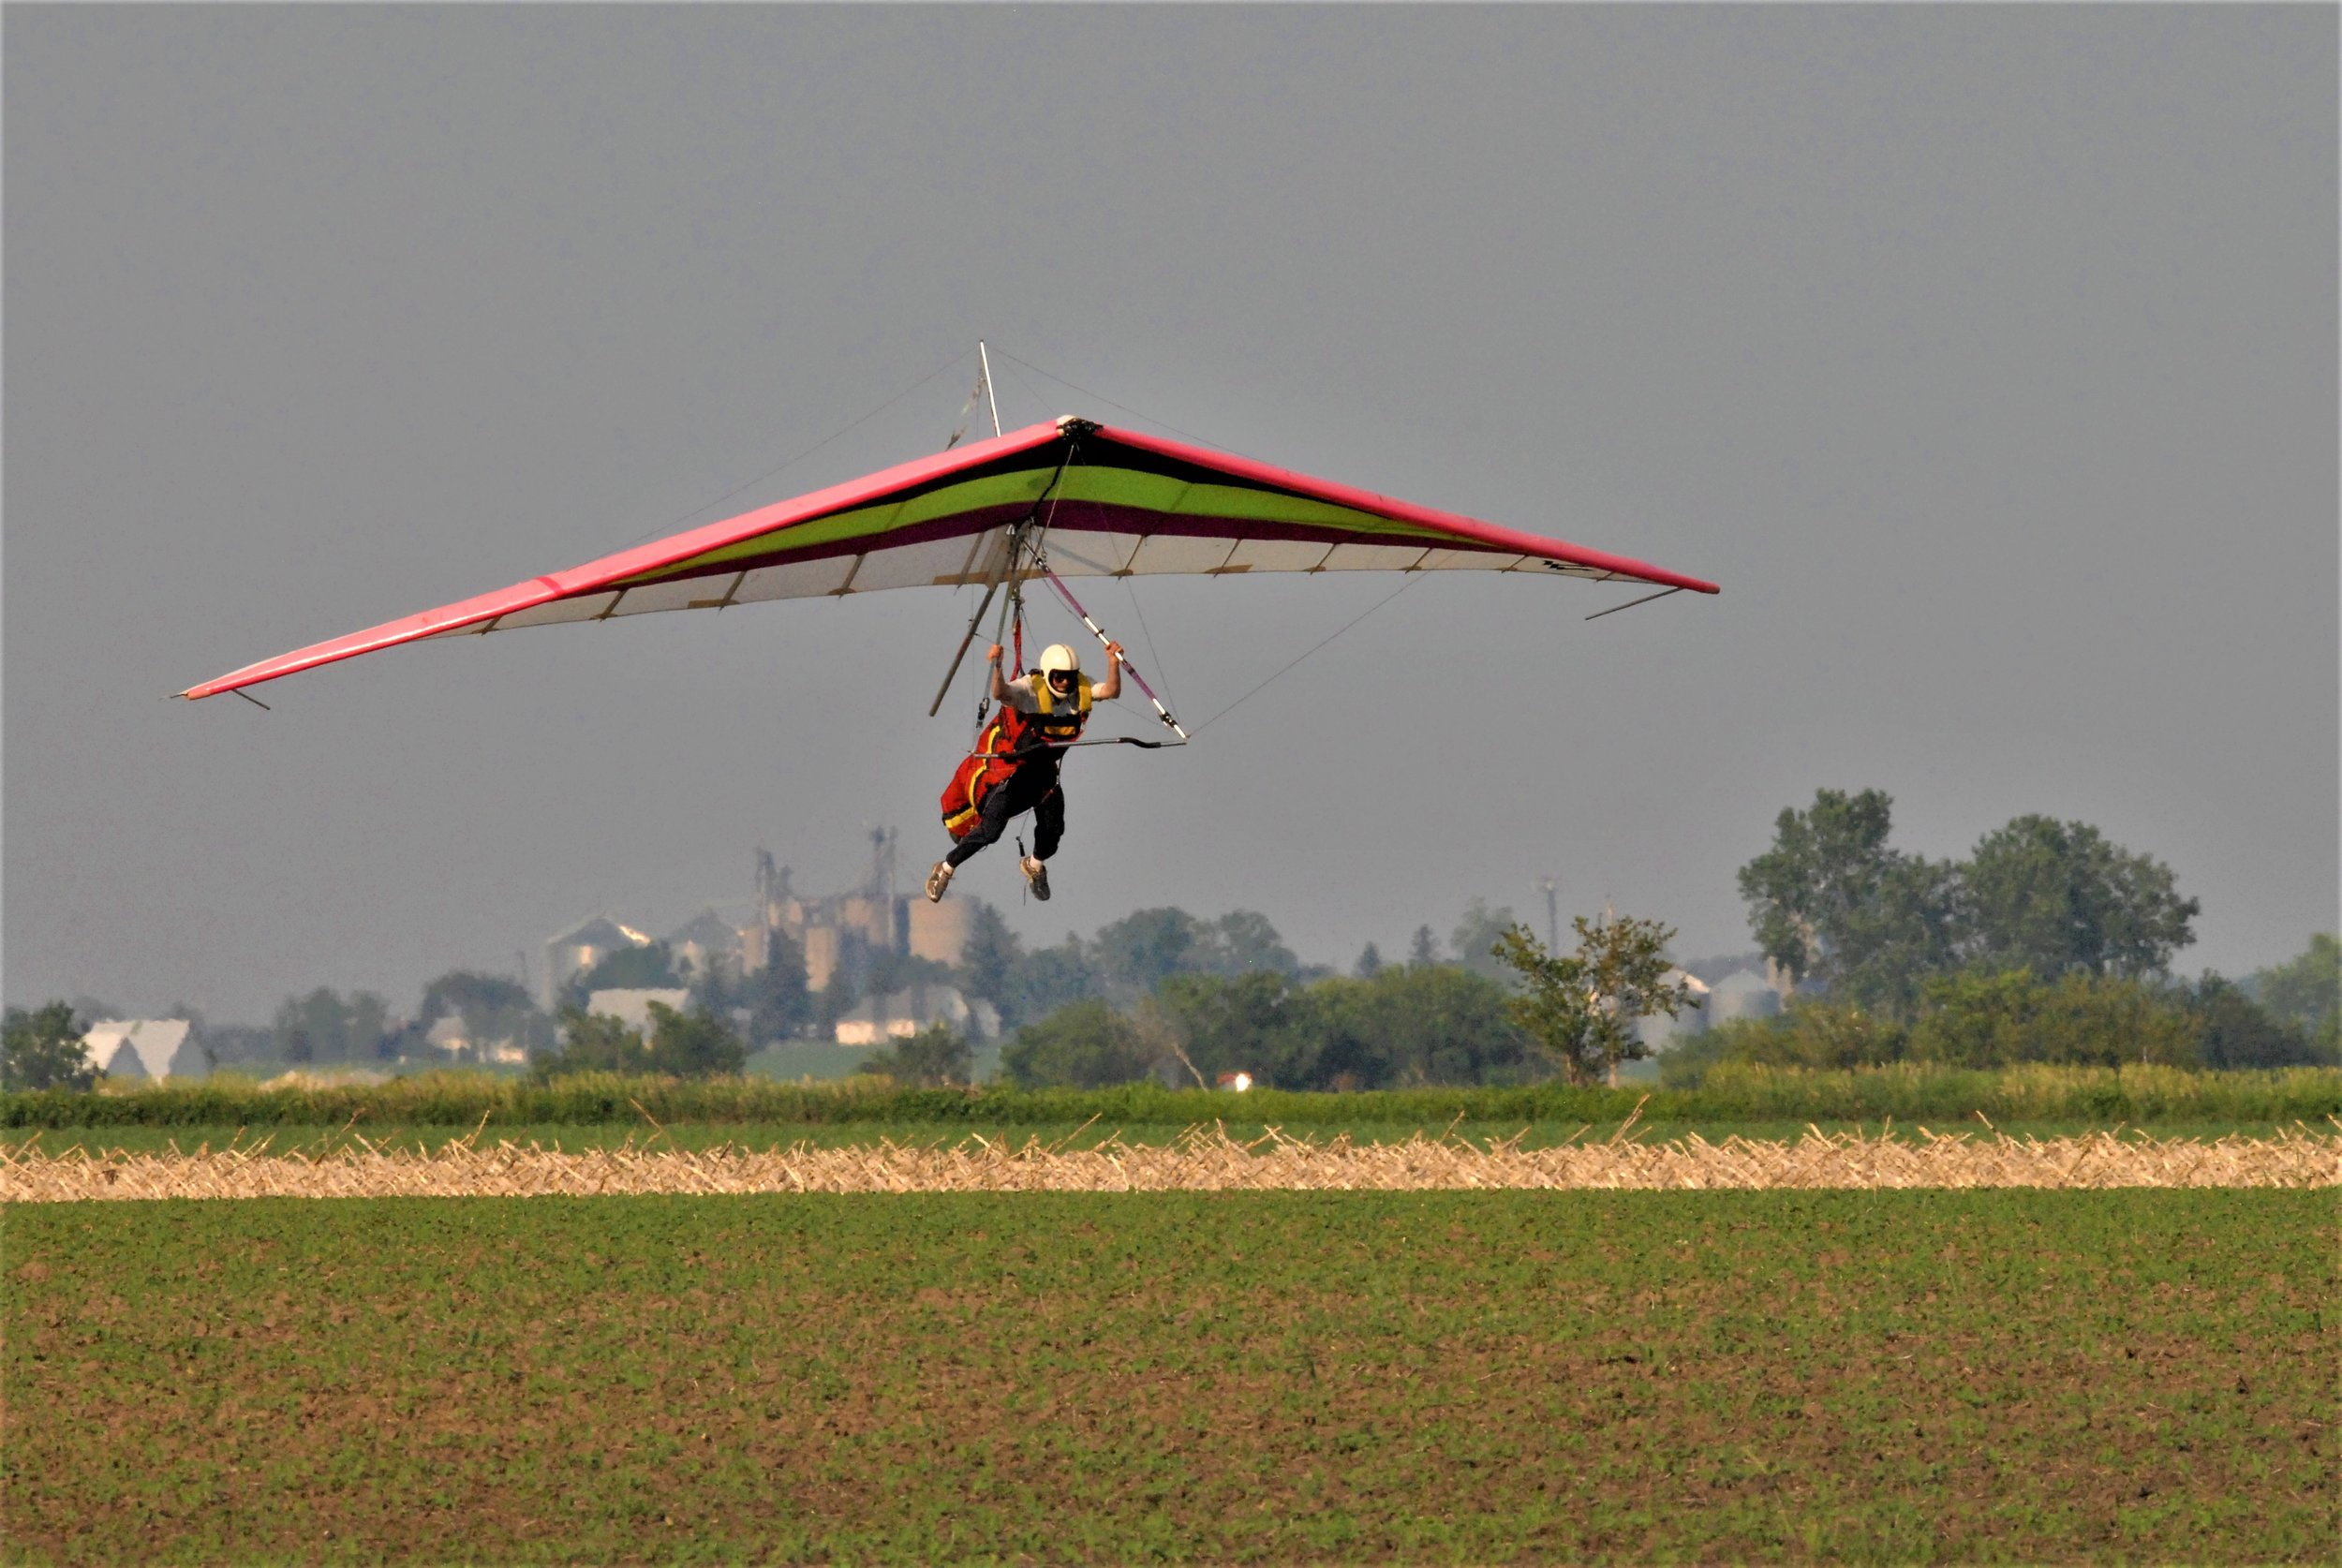 The thrill of hang gliding does not stop after your discovery flight! Solo pilots can thermal for hours, relying only on skill and air currents to stay aloft.Hang Glide Chicago is the premier Midwest Hang Gliding Flight School. You can learn to fly, soar, and thermal right here just an hour outside of Chicago!